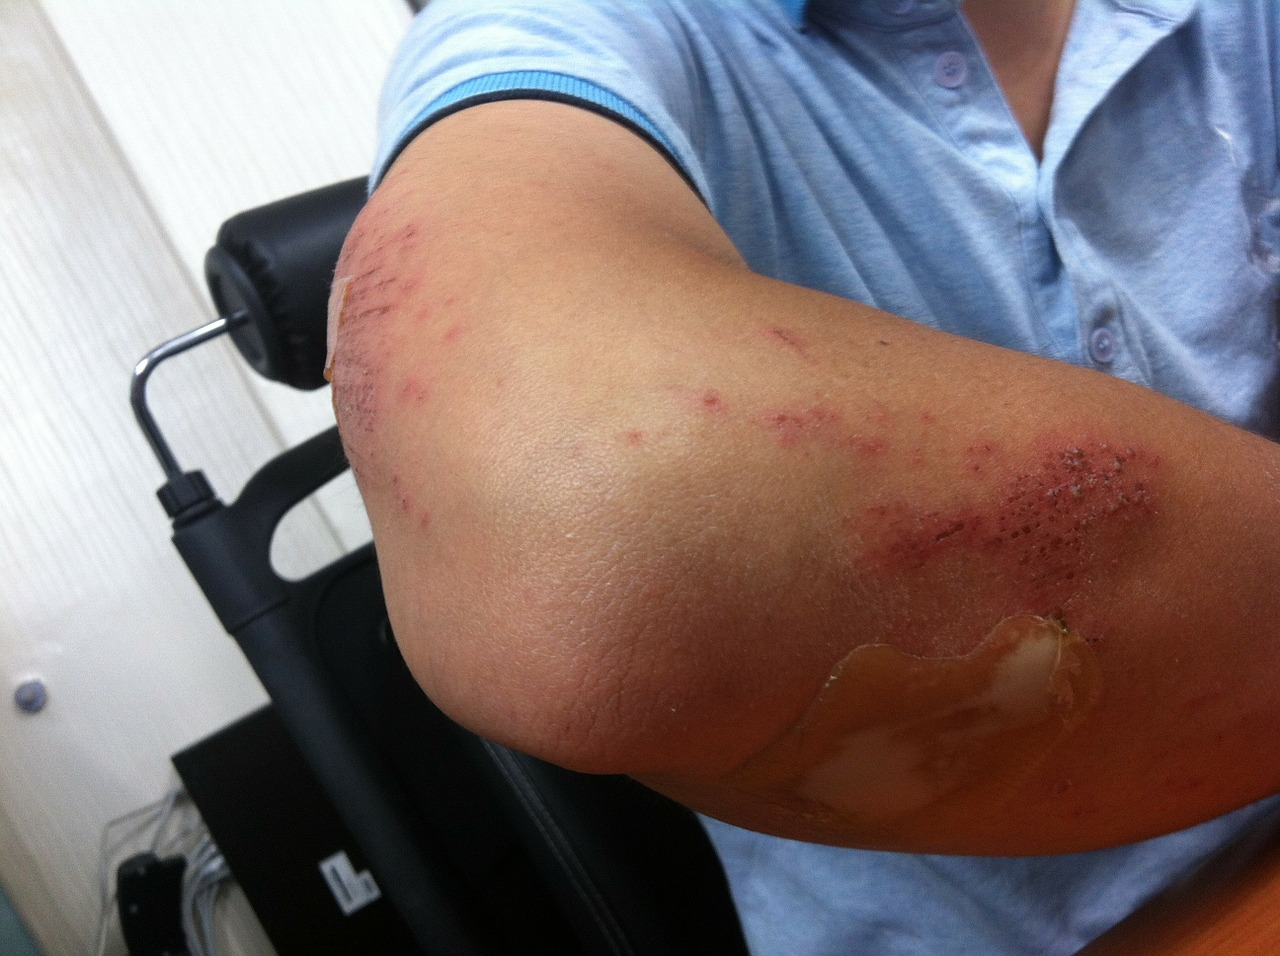 injury from accident